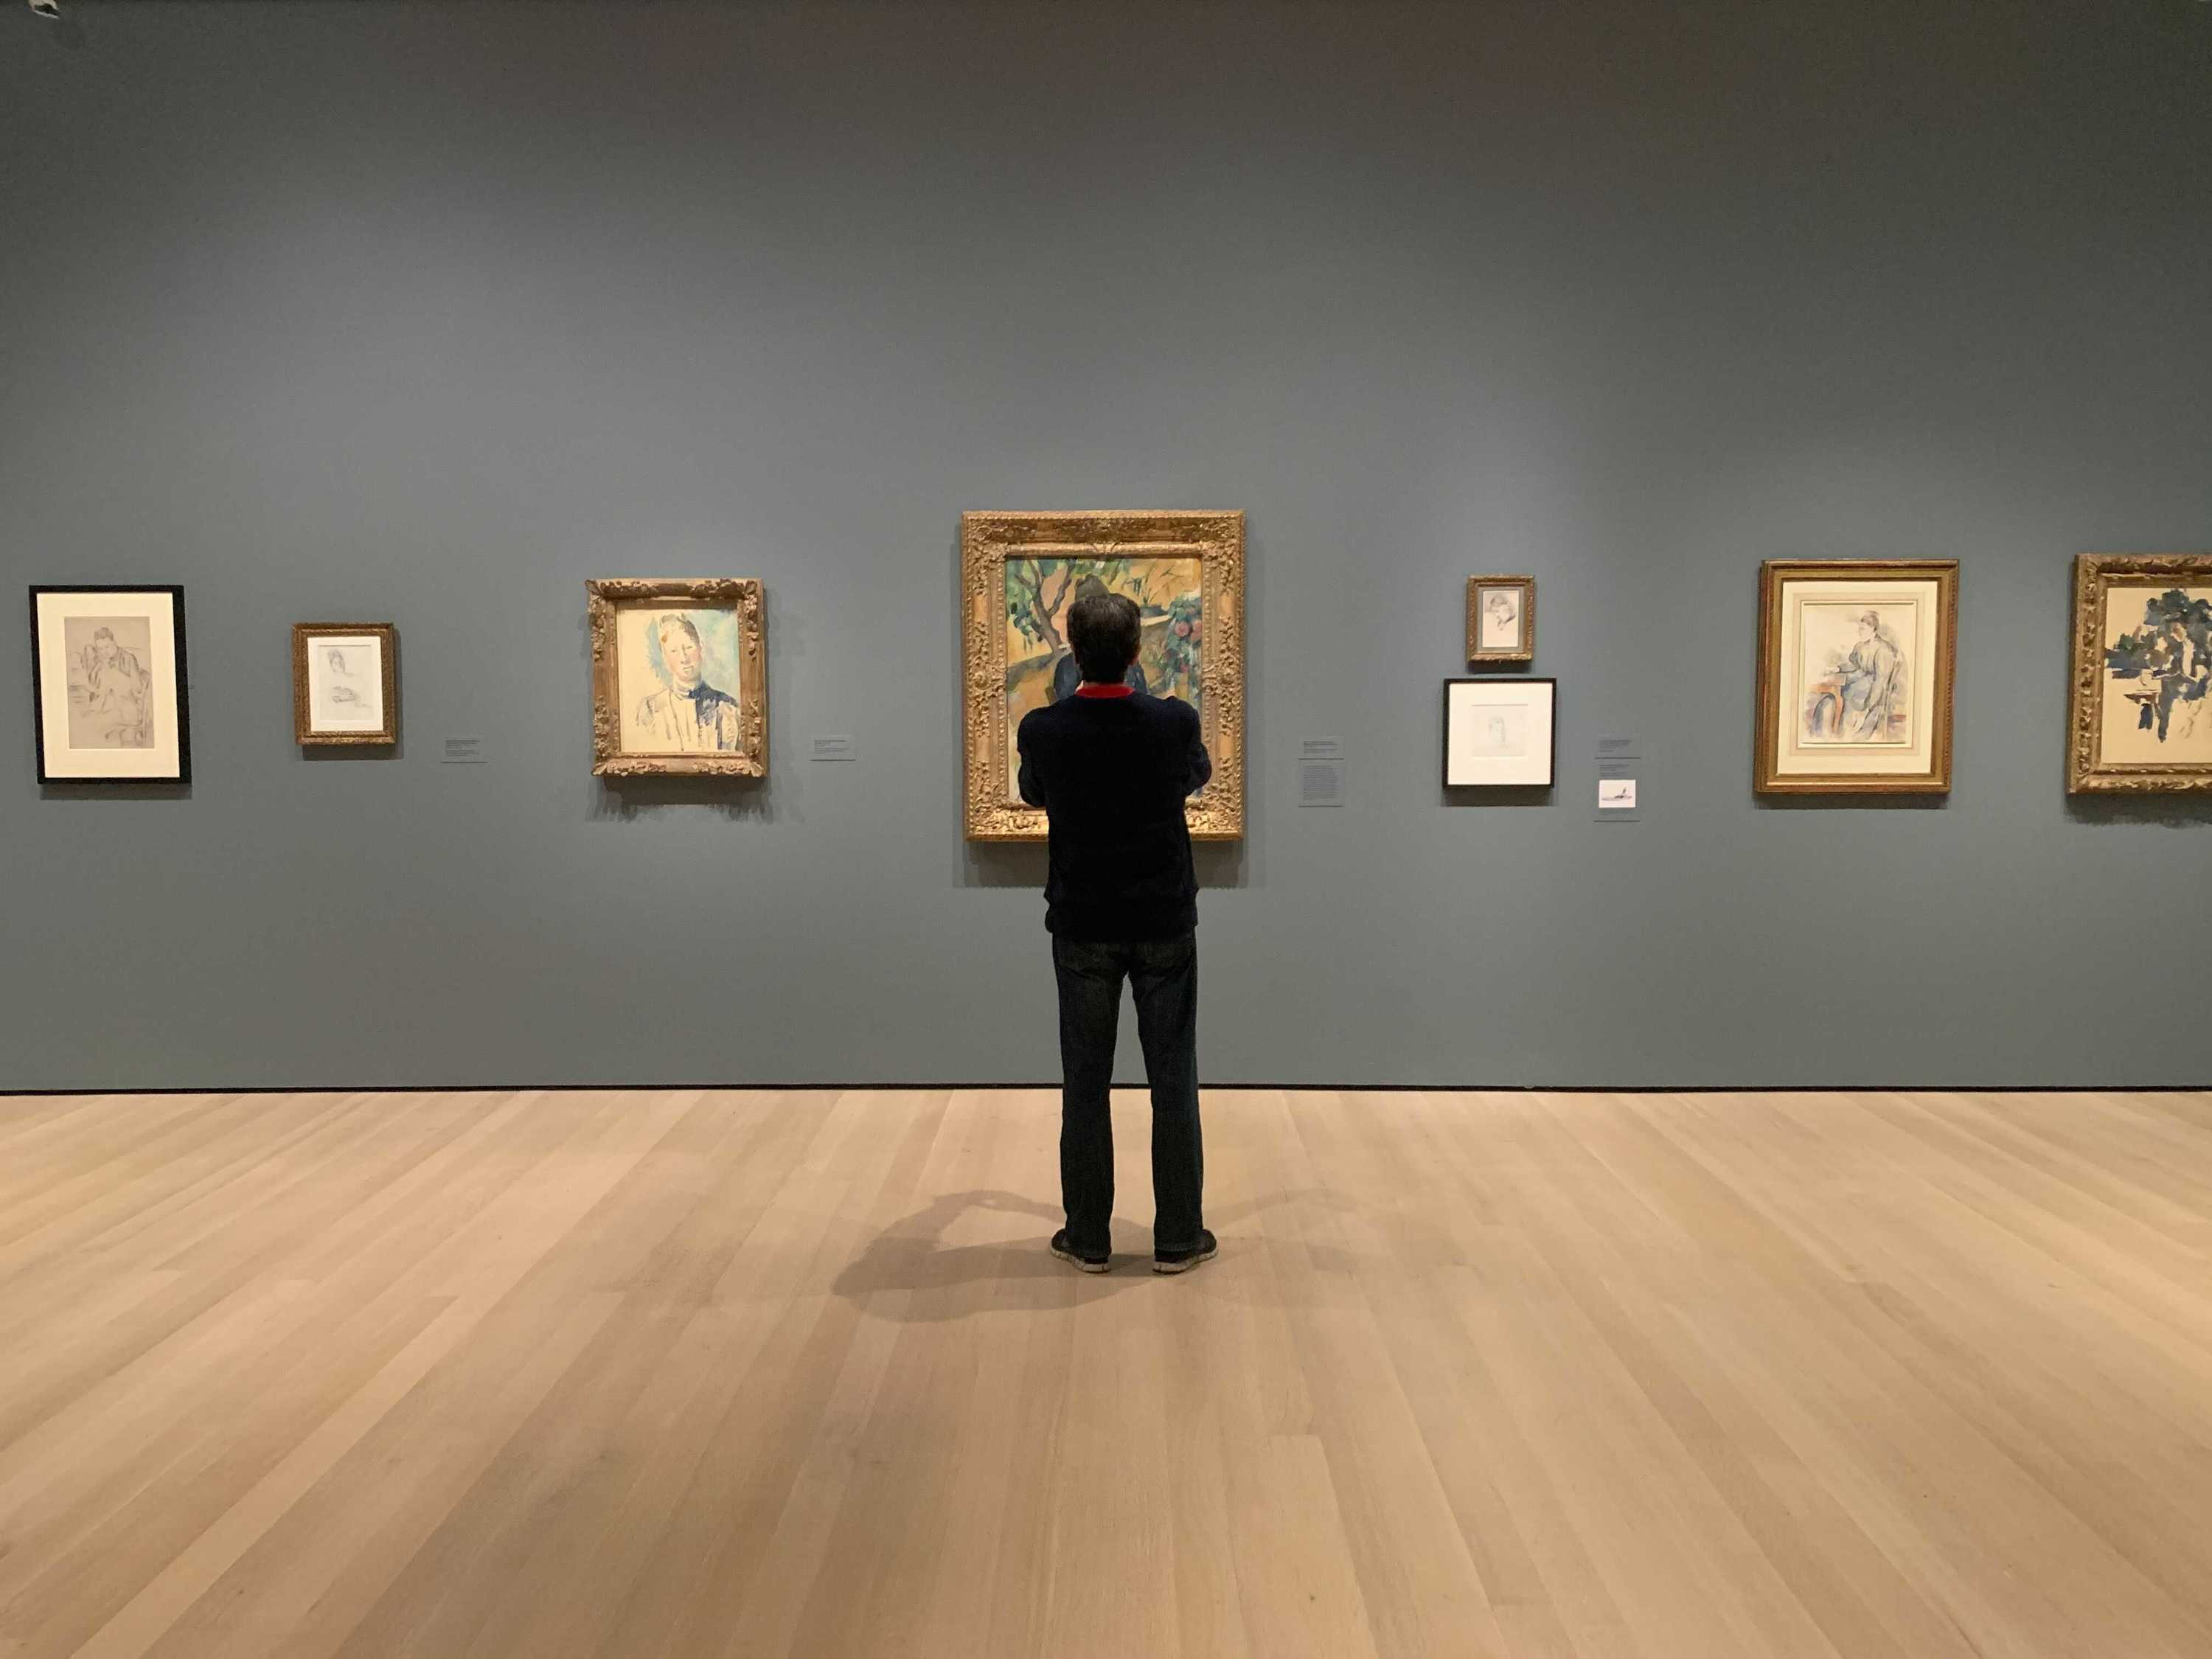 Cezanne Drawing exhibit at Moma